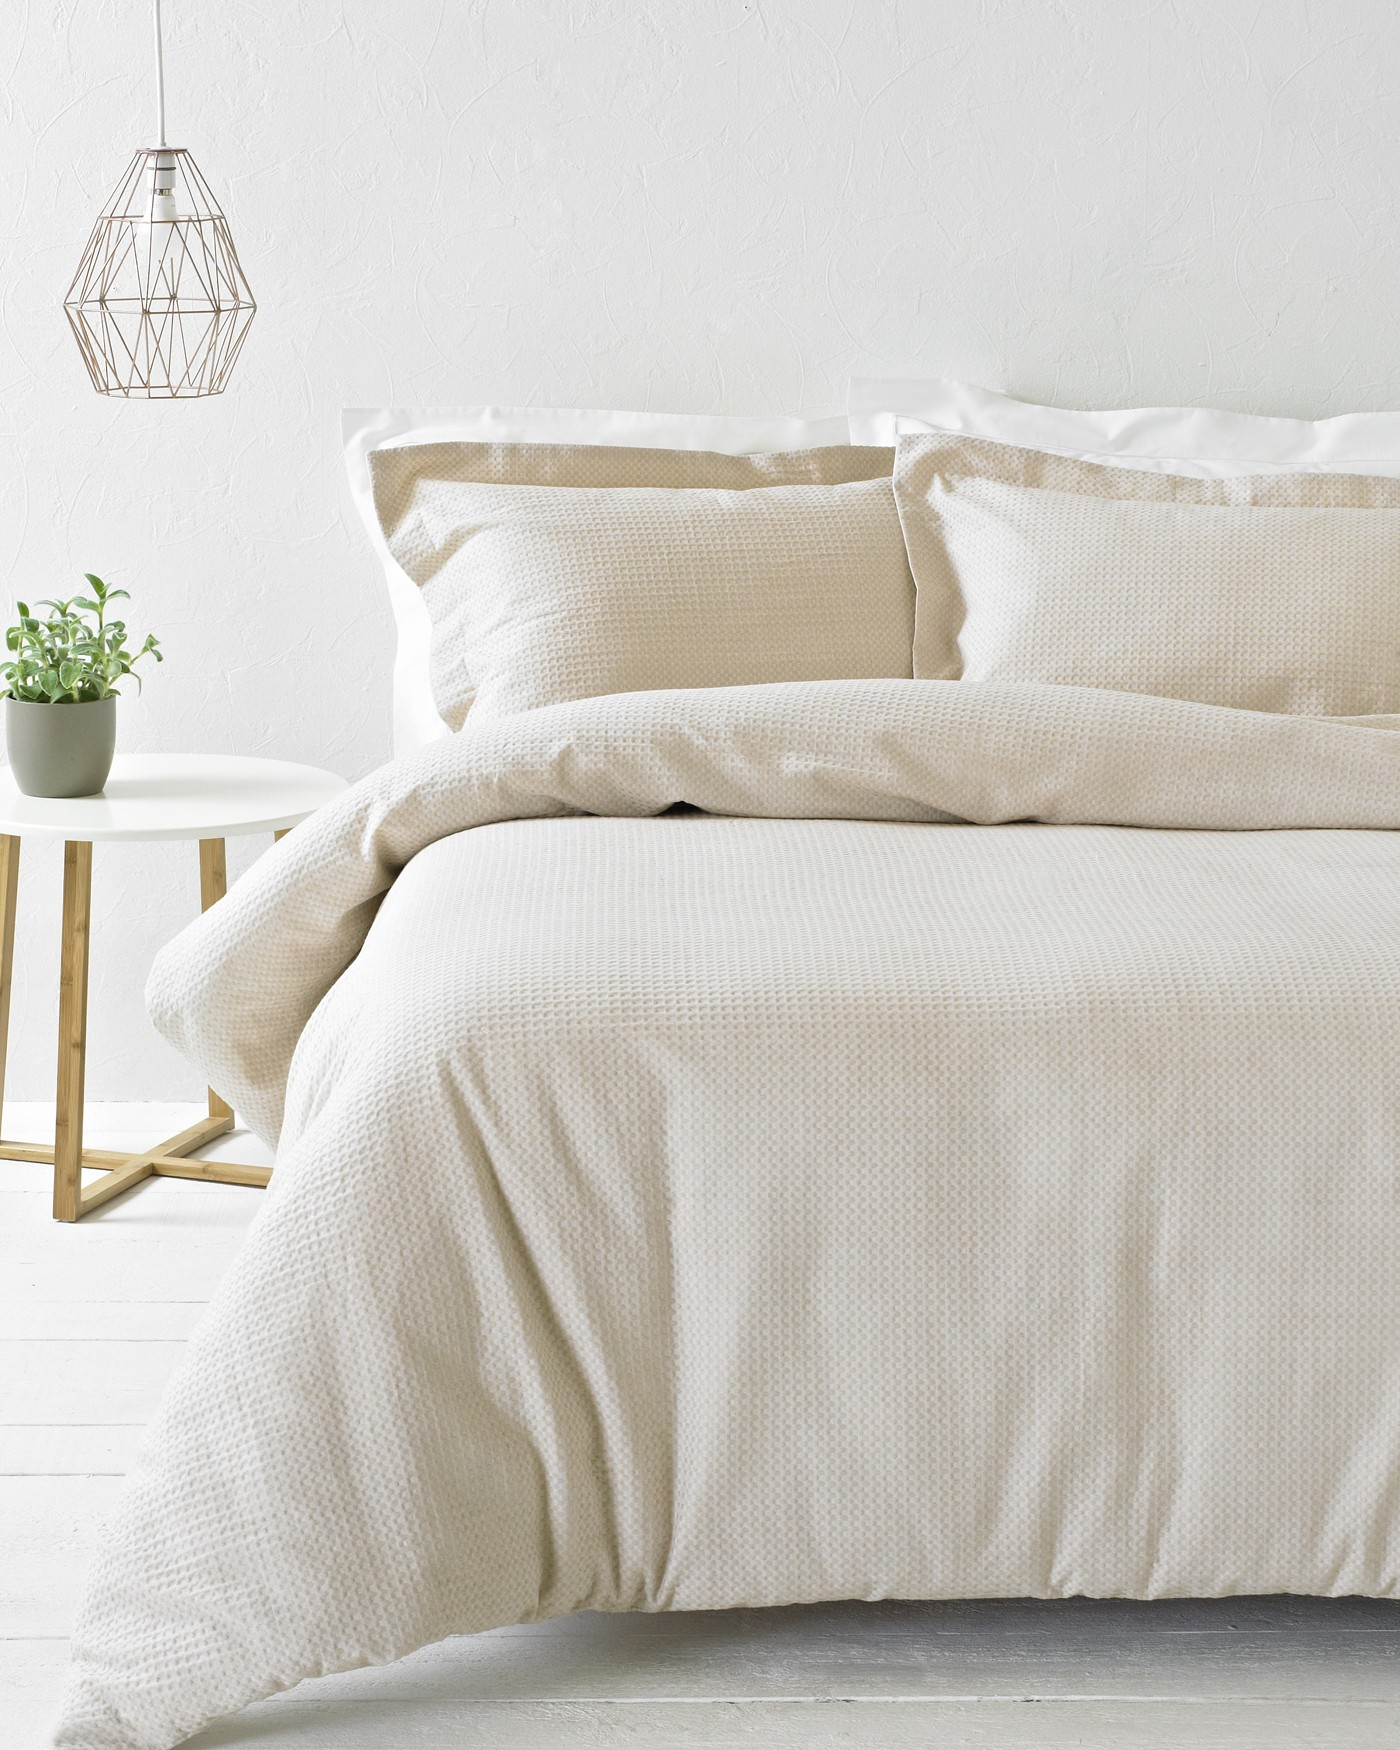 The Home Furnishings Company 100% Cotton Waffle Blush Duvet Set